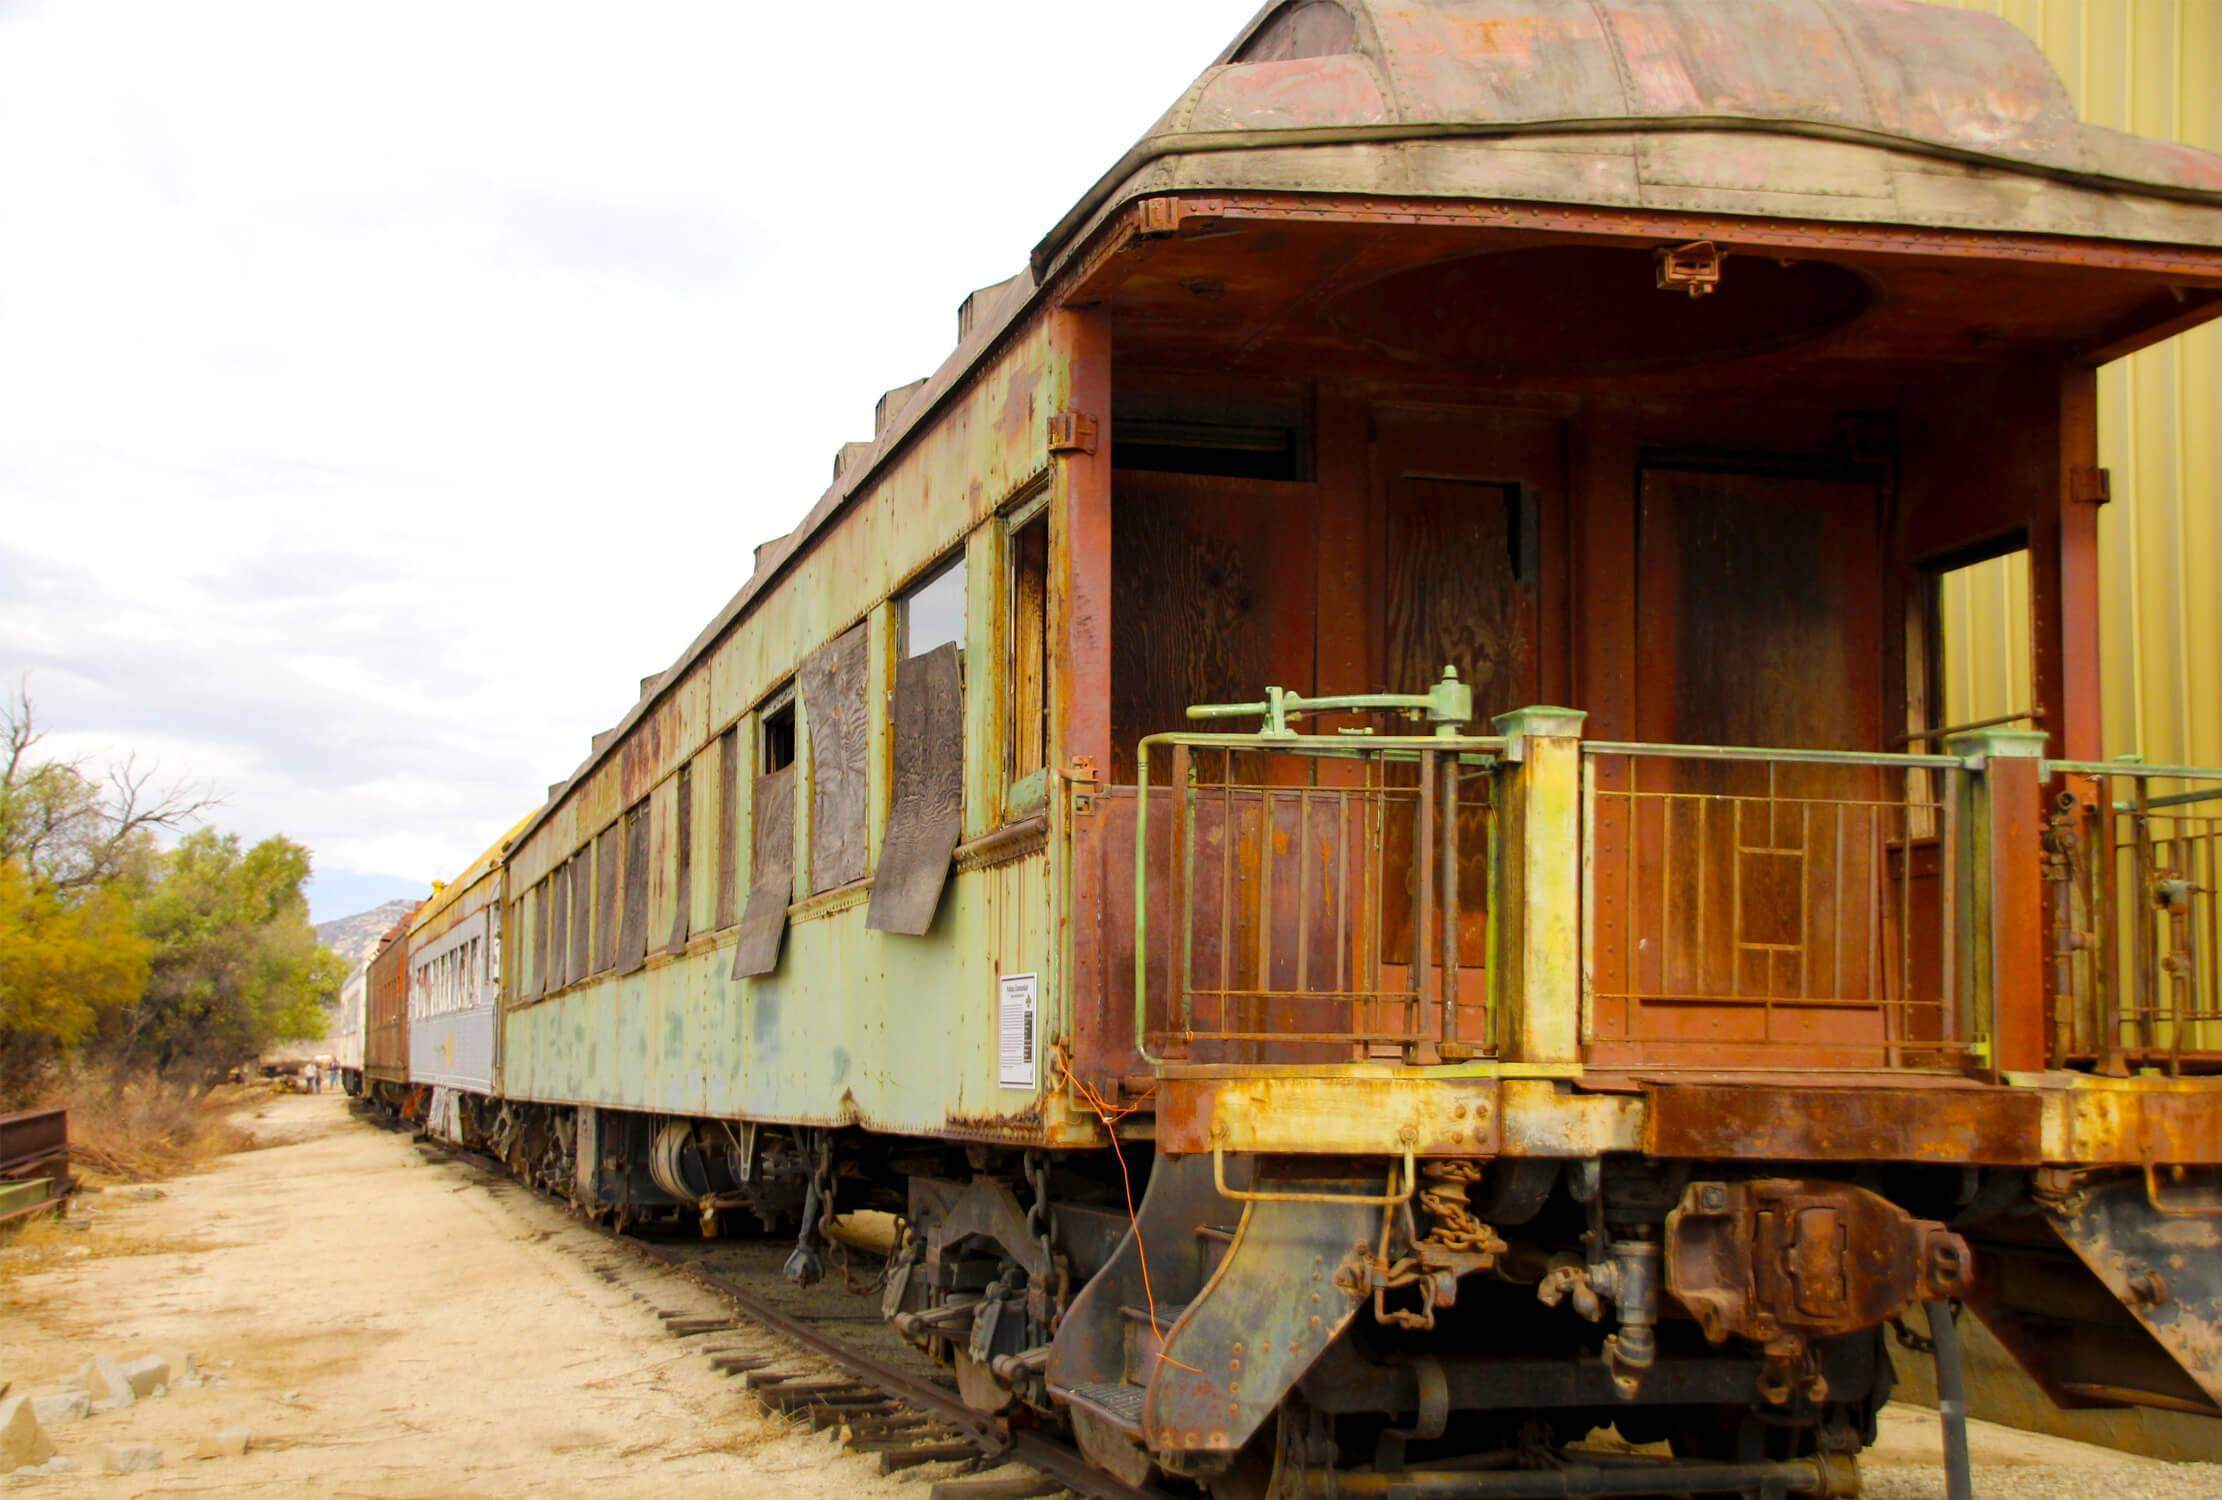 Visit the Pacific Southwest Railway Museum in Campo with the opportunity to get to explore up-close old, retired train carts.